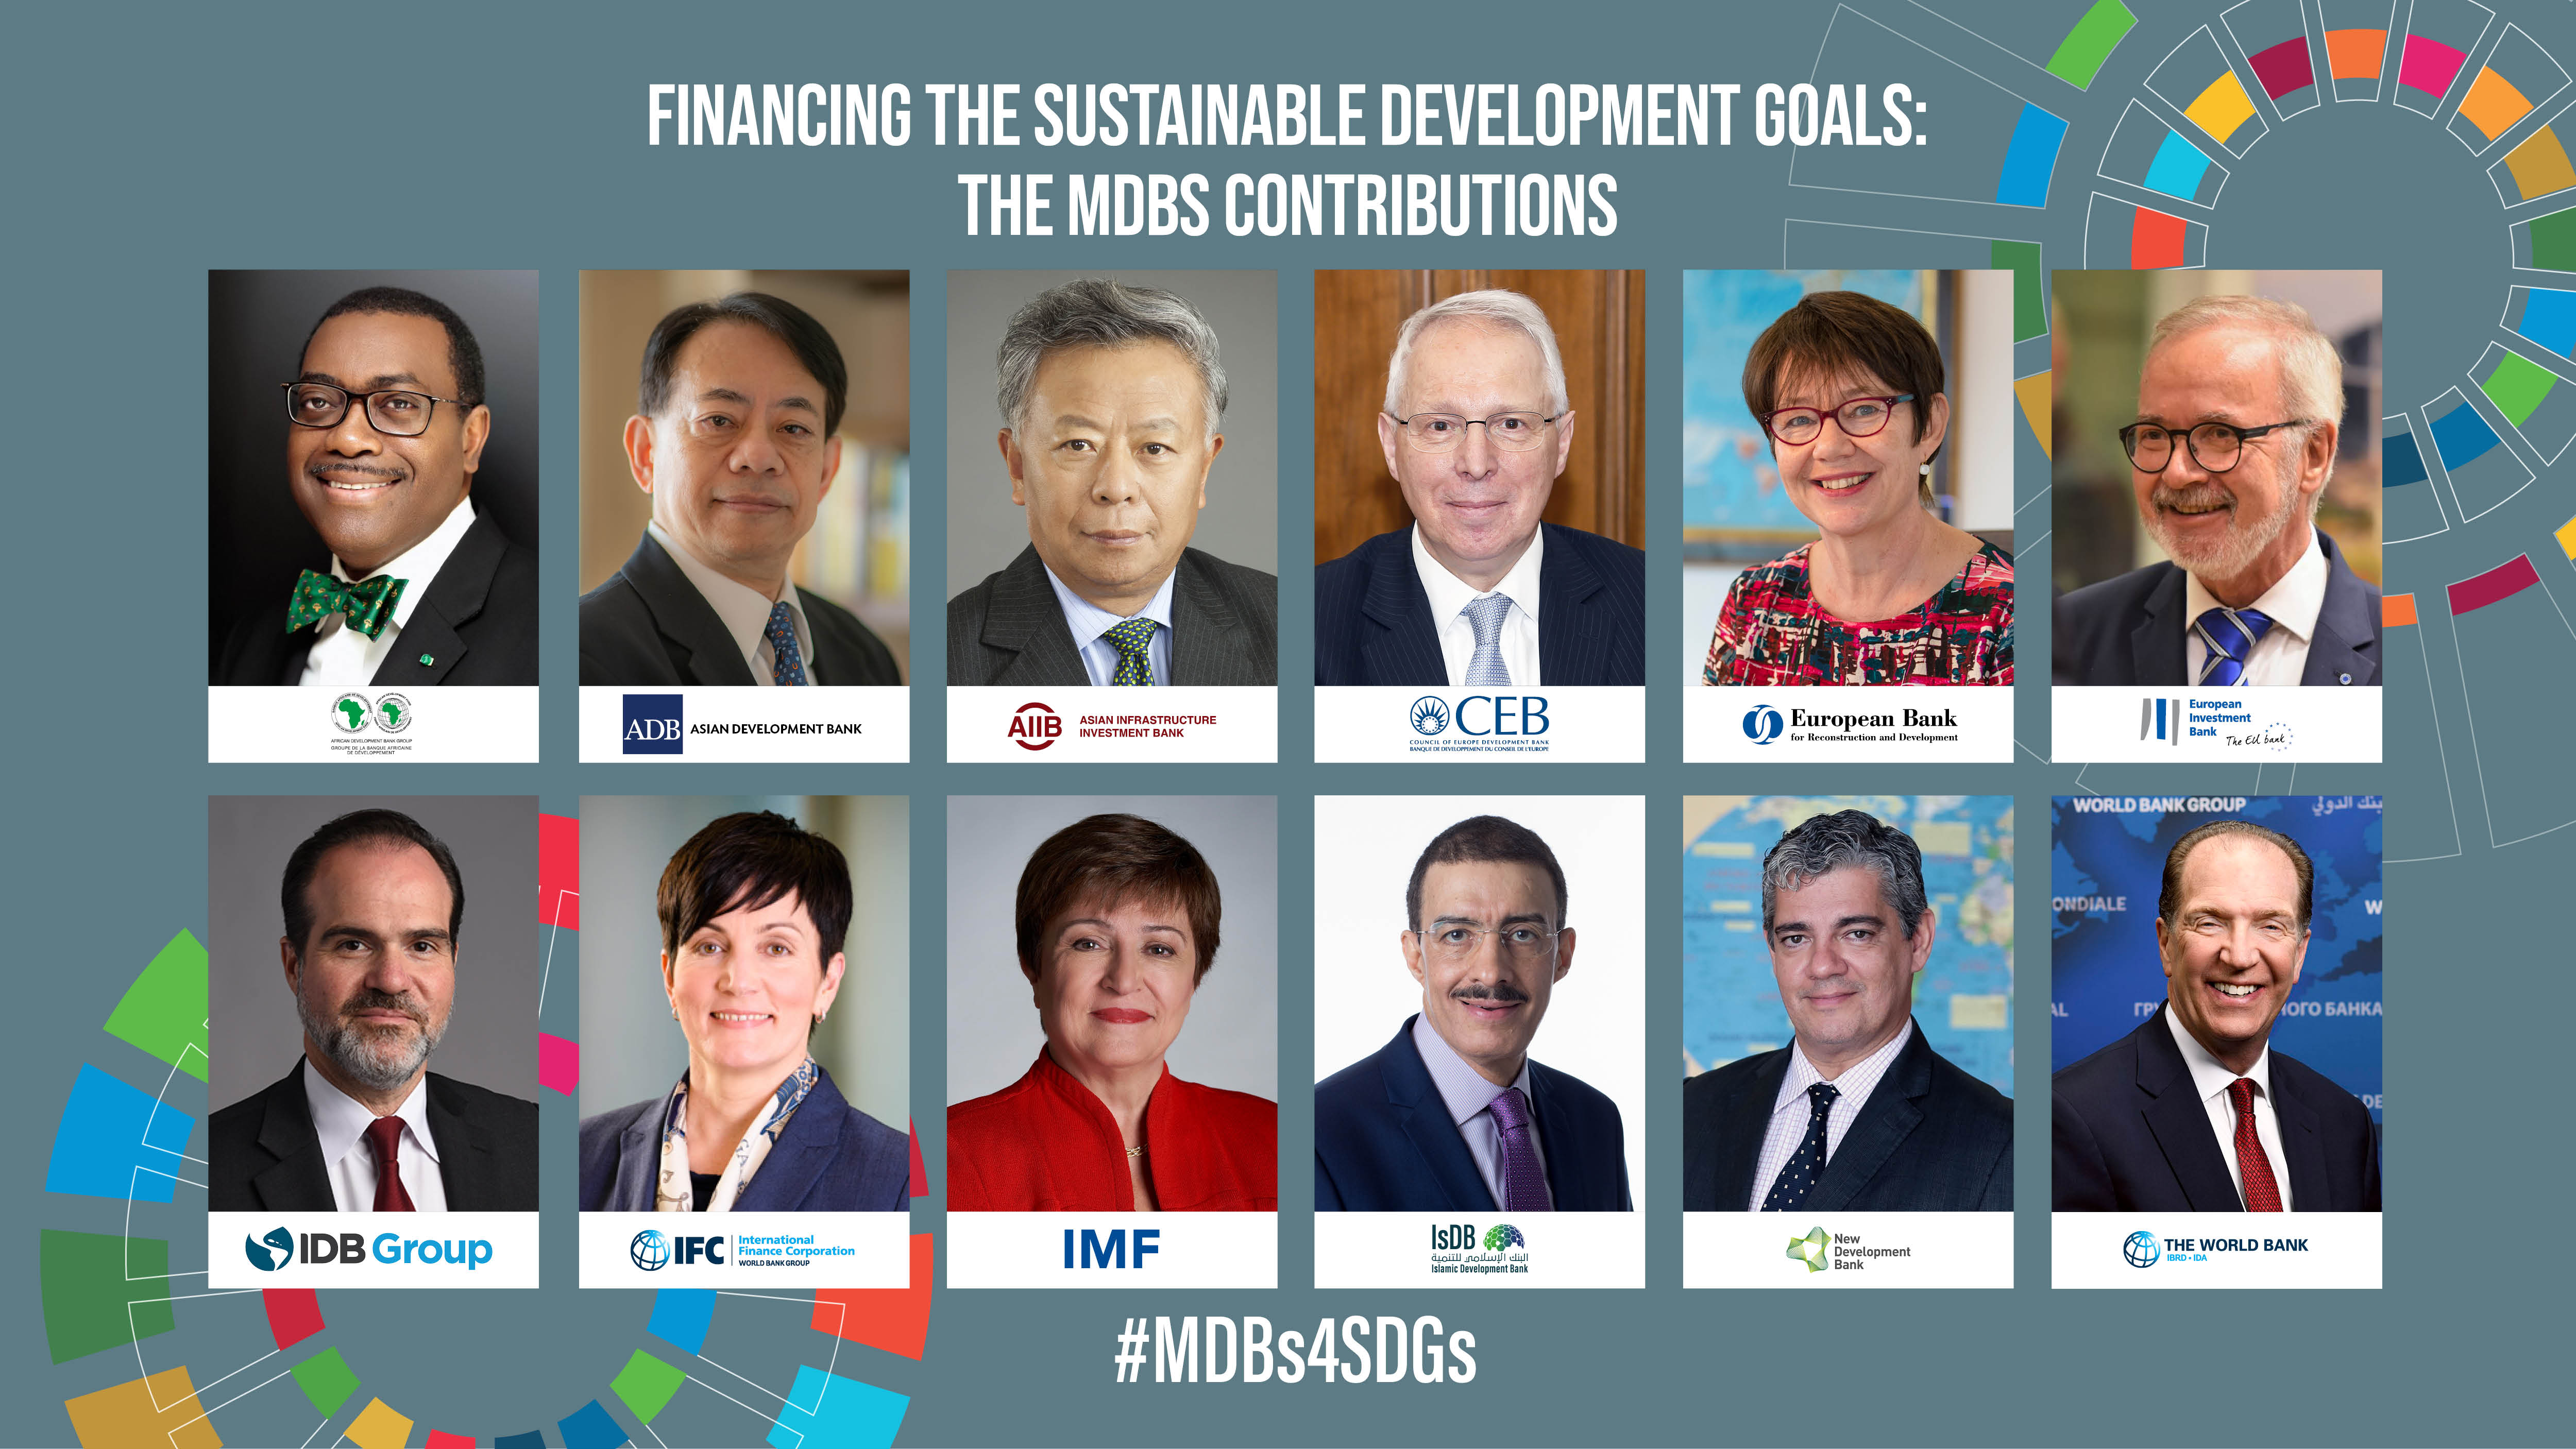 Financing The Sustainable Development Goals: The Contributions of the  Multilateral Development Banks | IsDB